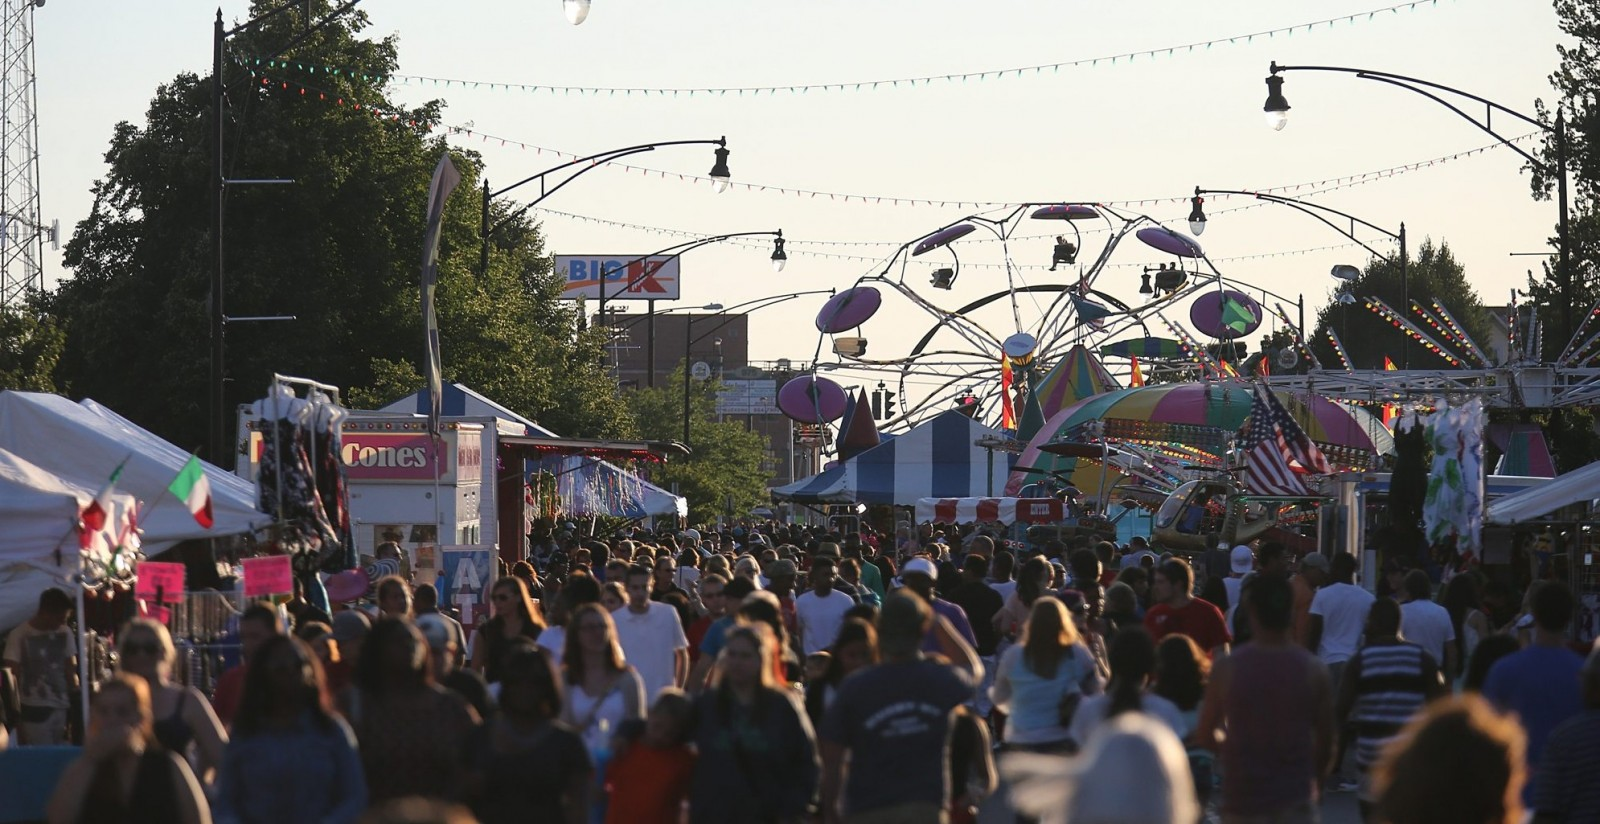 The annual Italian Festival draws food lovers to Hertel Avenue for a four-day fest. (Buffalo News file photo)